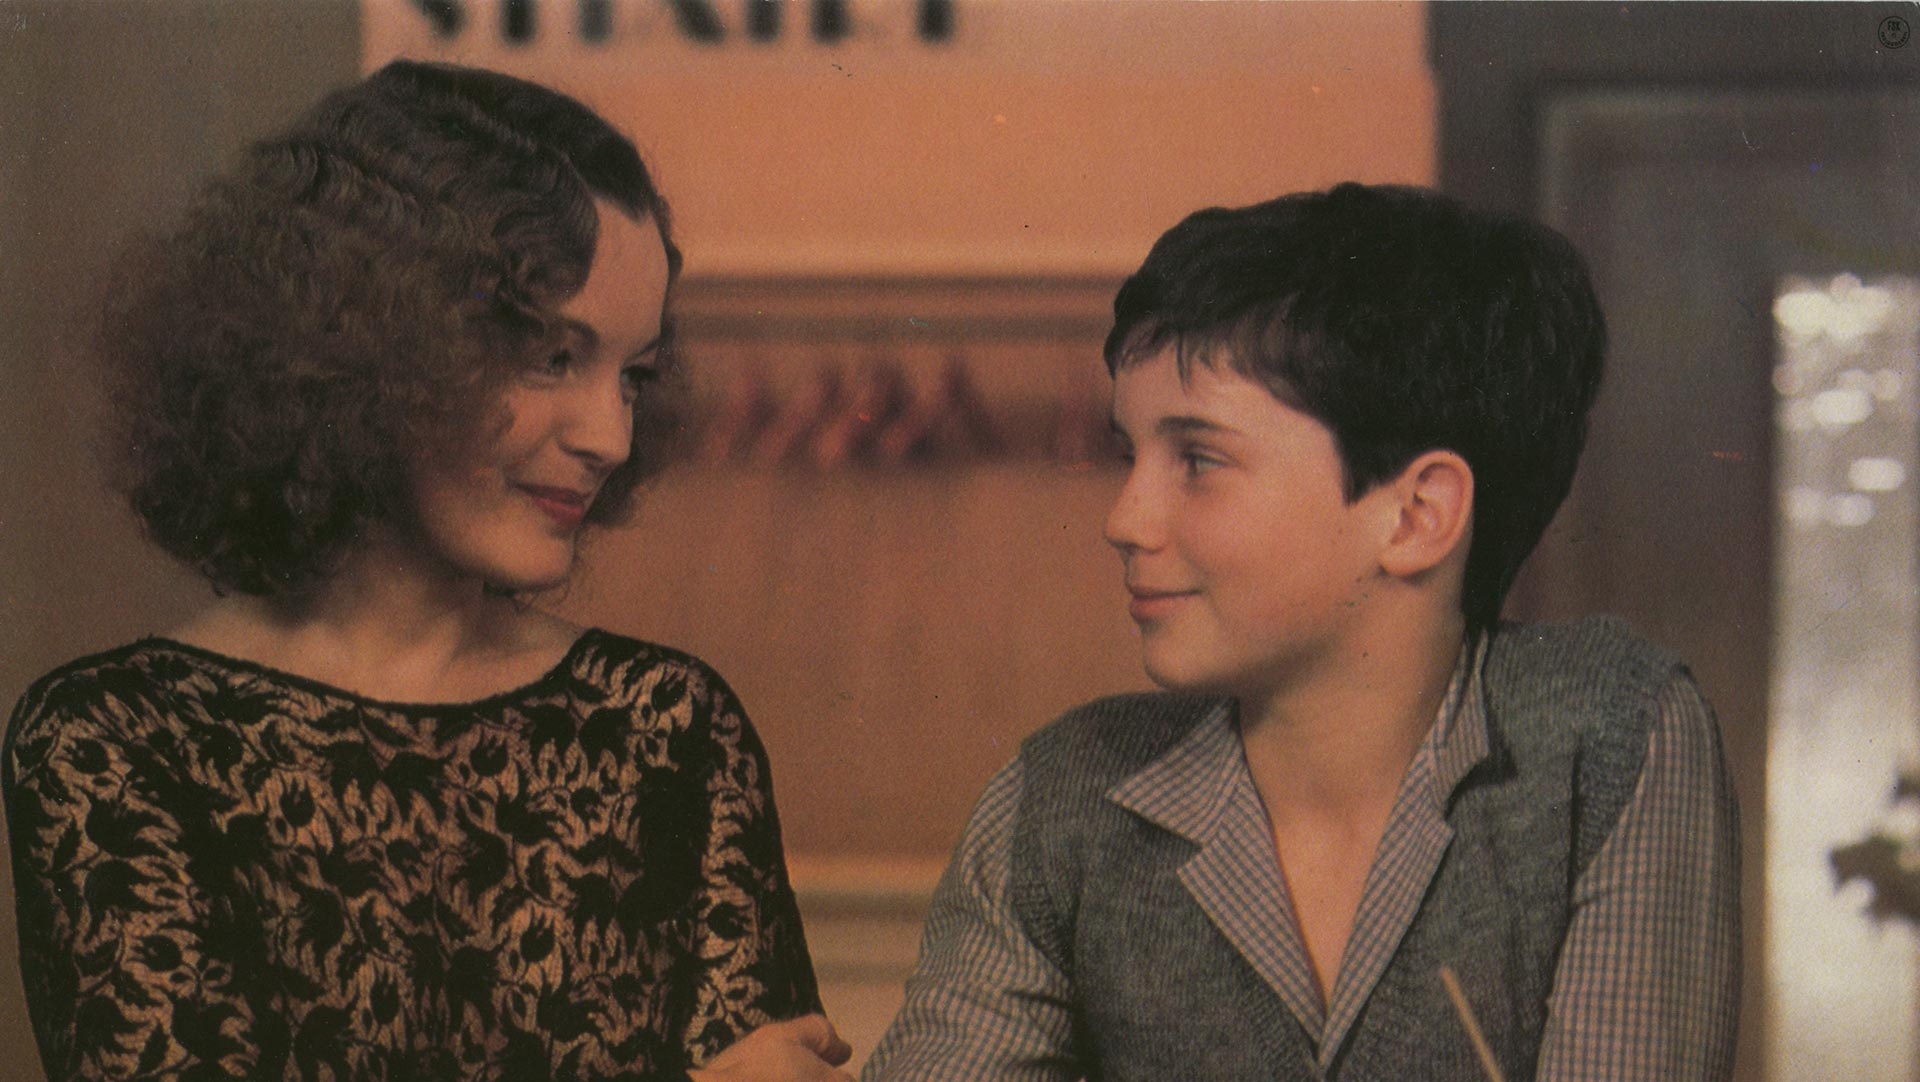 Romy Schneider with a young child, they are both looking at each other and smiling